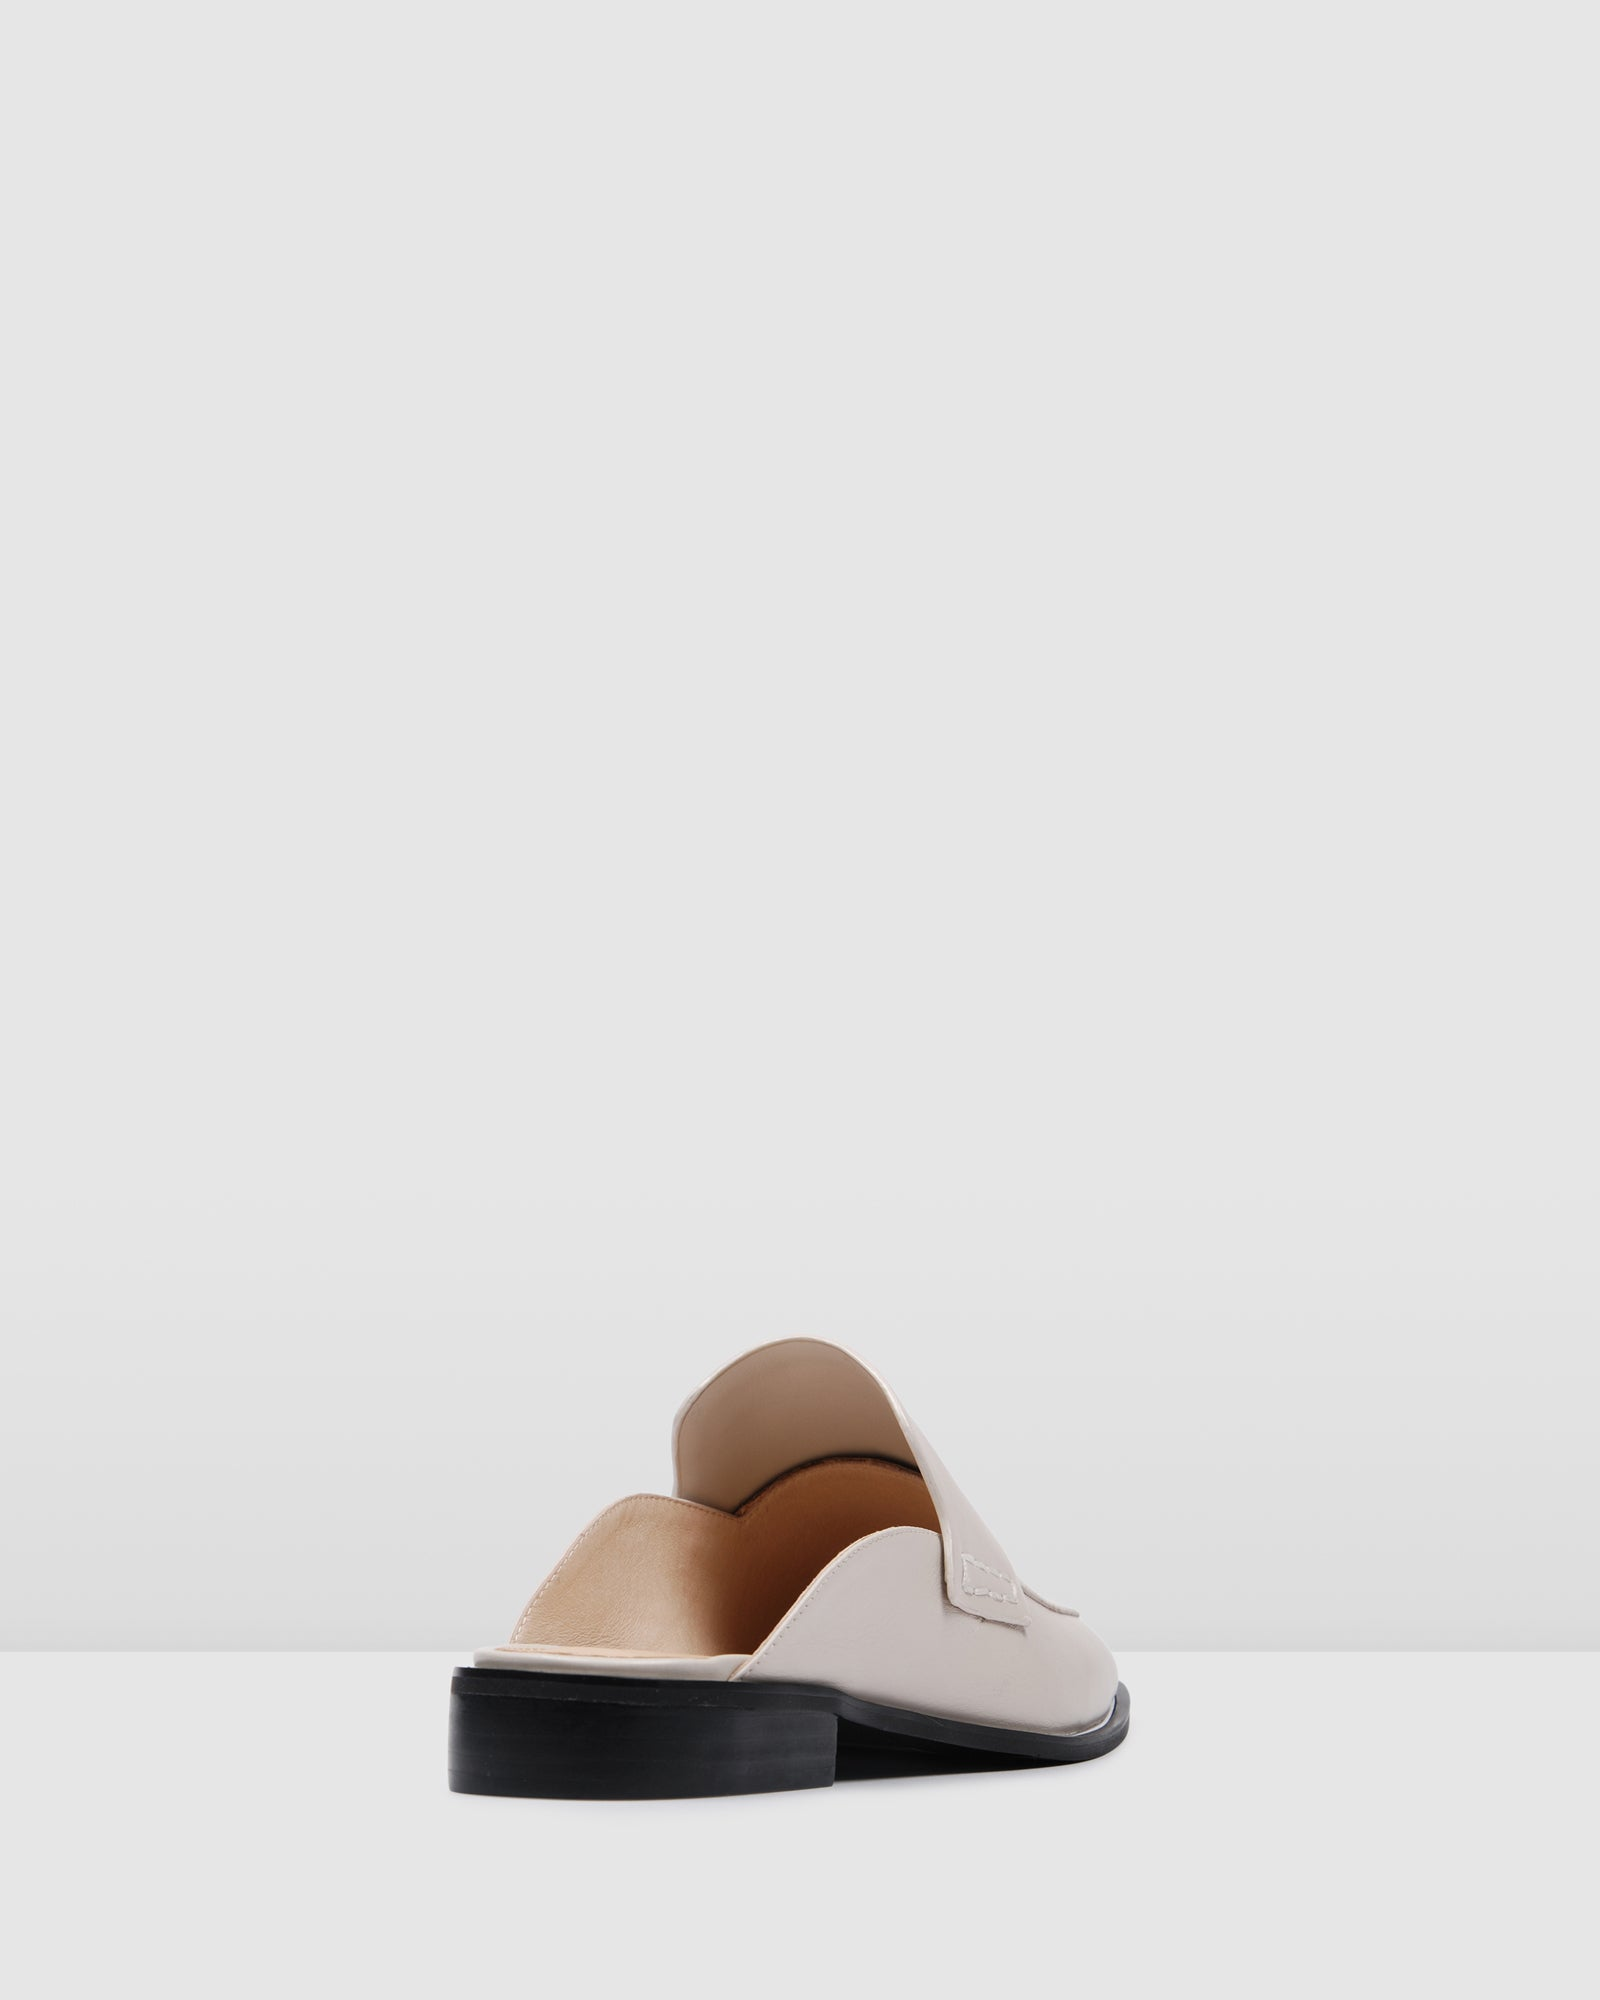 PORTER LOAFERS BONE LEATHER